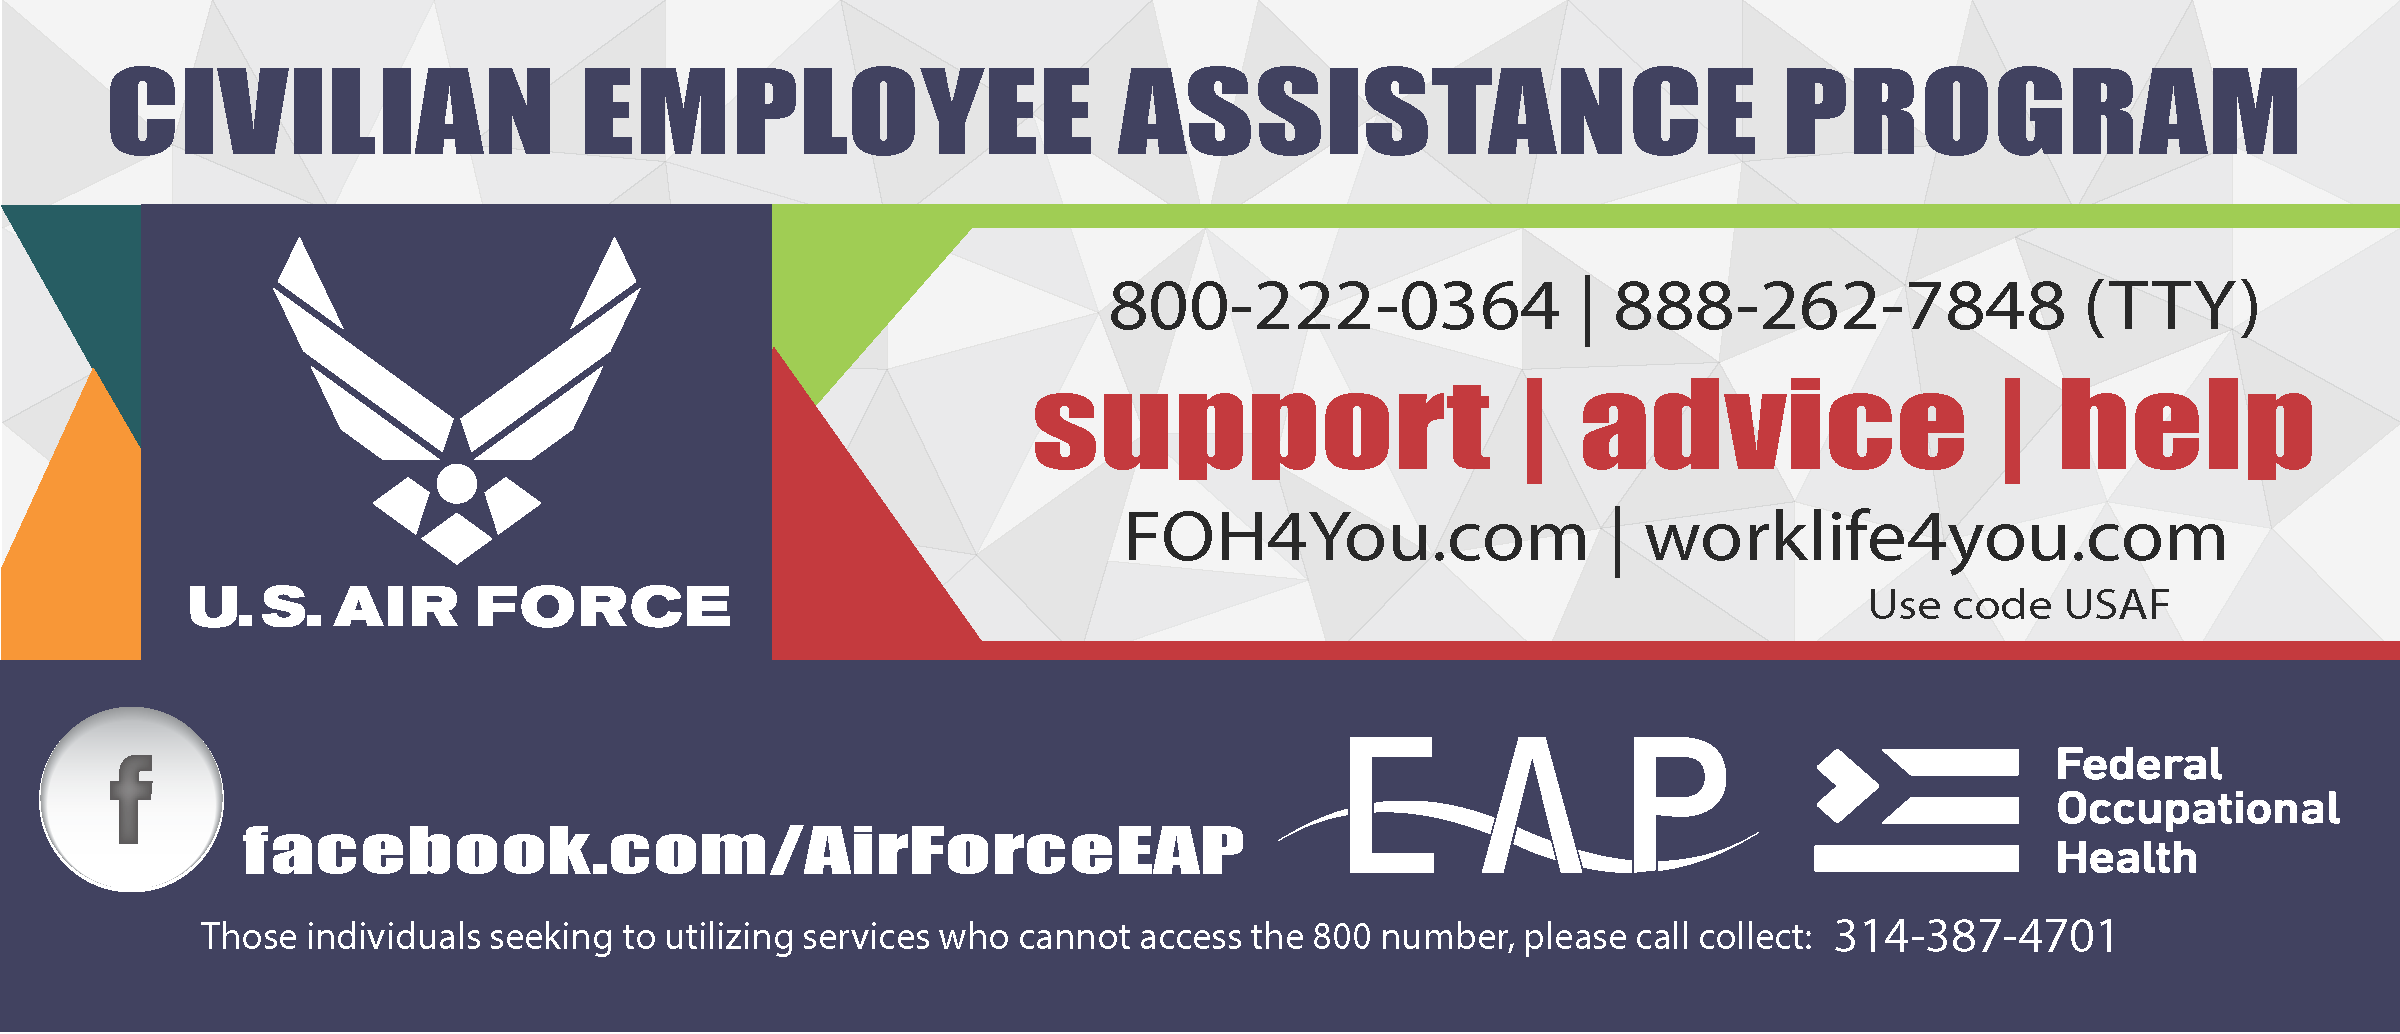 Poster with information about the civilian employee assistance program.